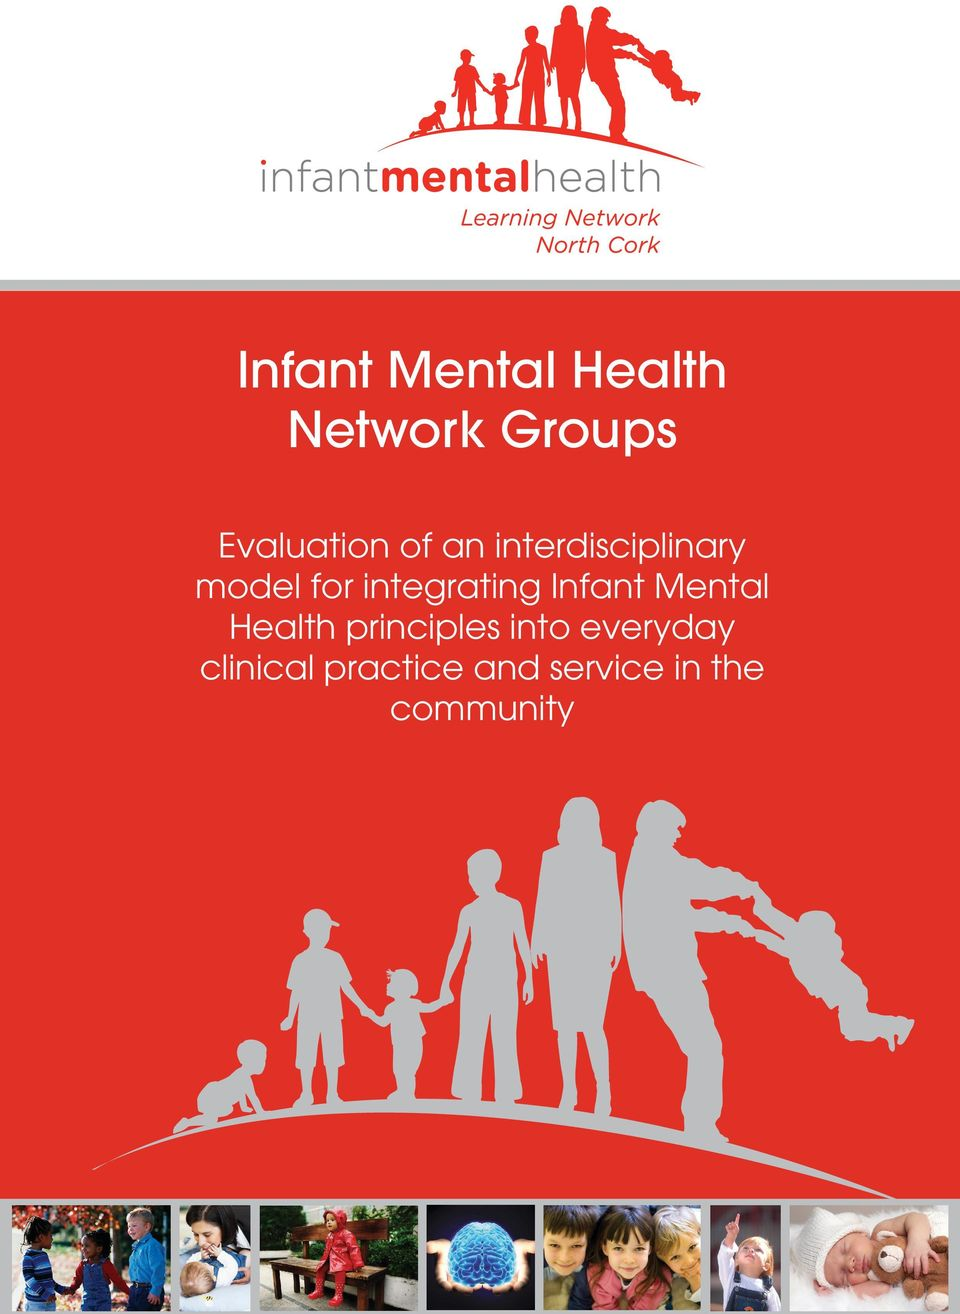 Infant Mental Health principles into everyday